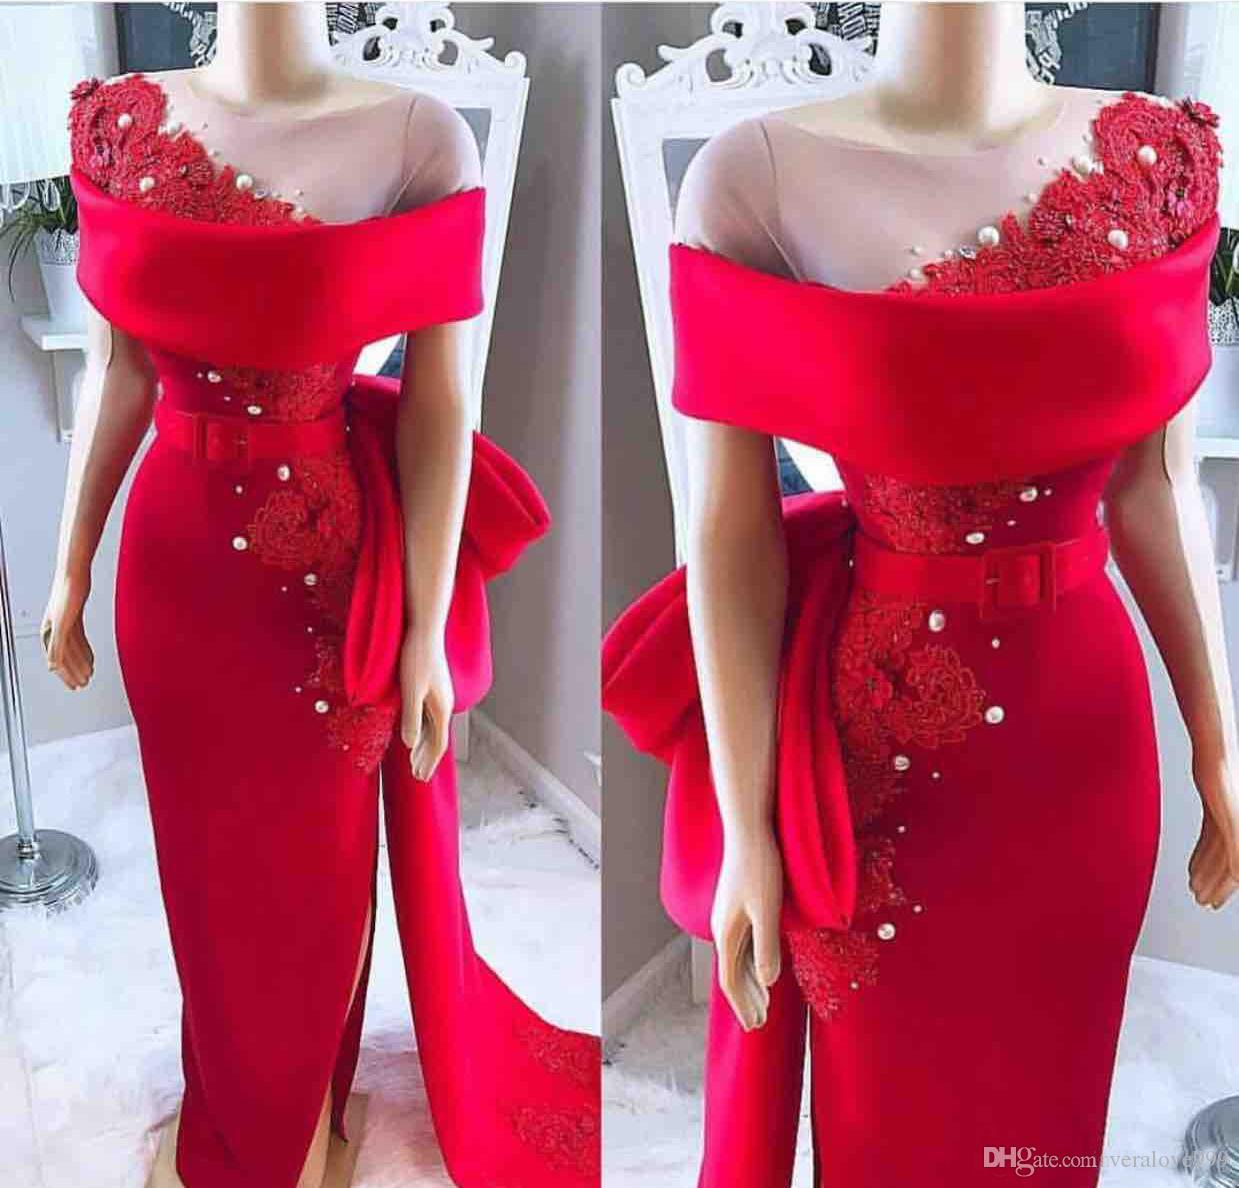 2019 New Arrival Evening Dresses Sheath Lace Applique Holiday Wear Formal Party Prom Gown Custom Made Plus Size